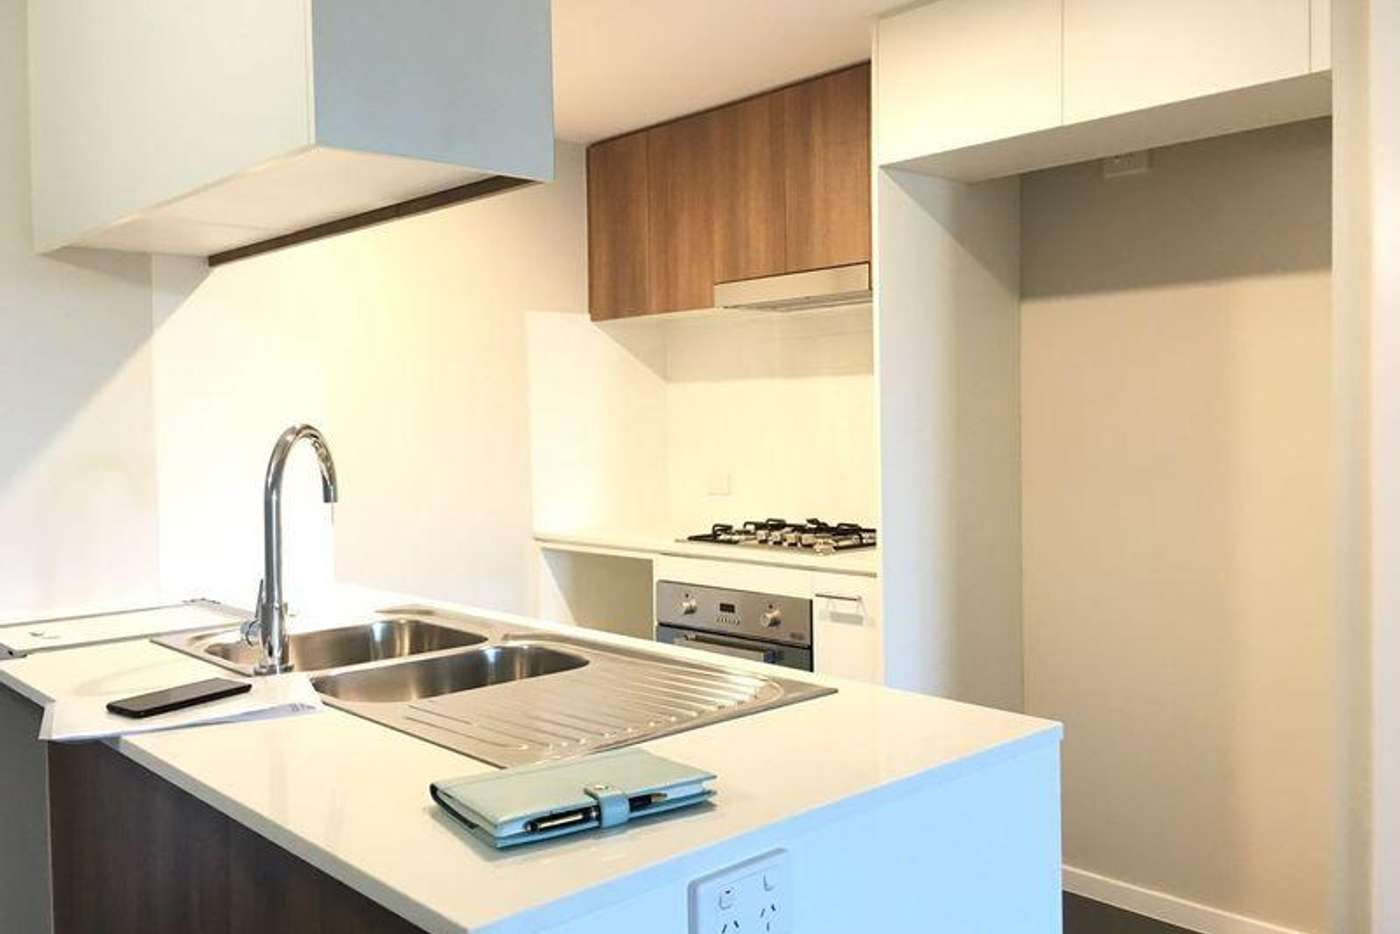 Main view of Homely apartment listing, 15 Bland Street, Coopers Plains QLD 4108